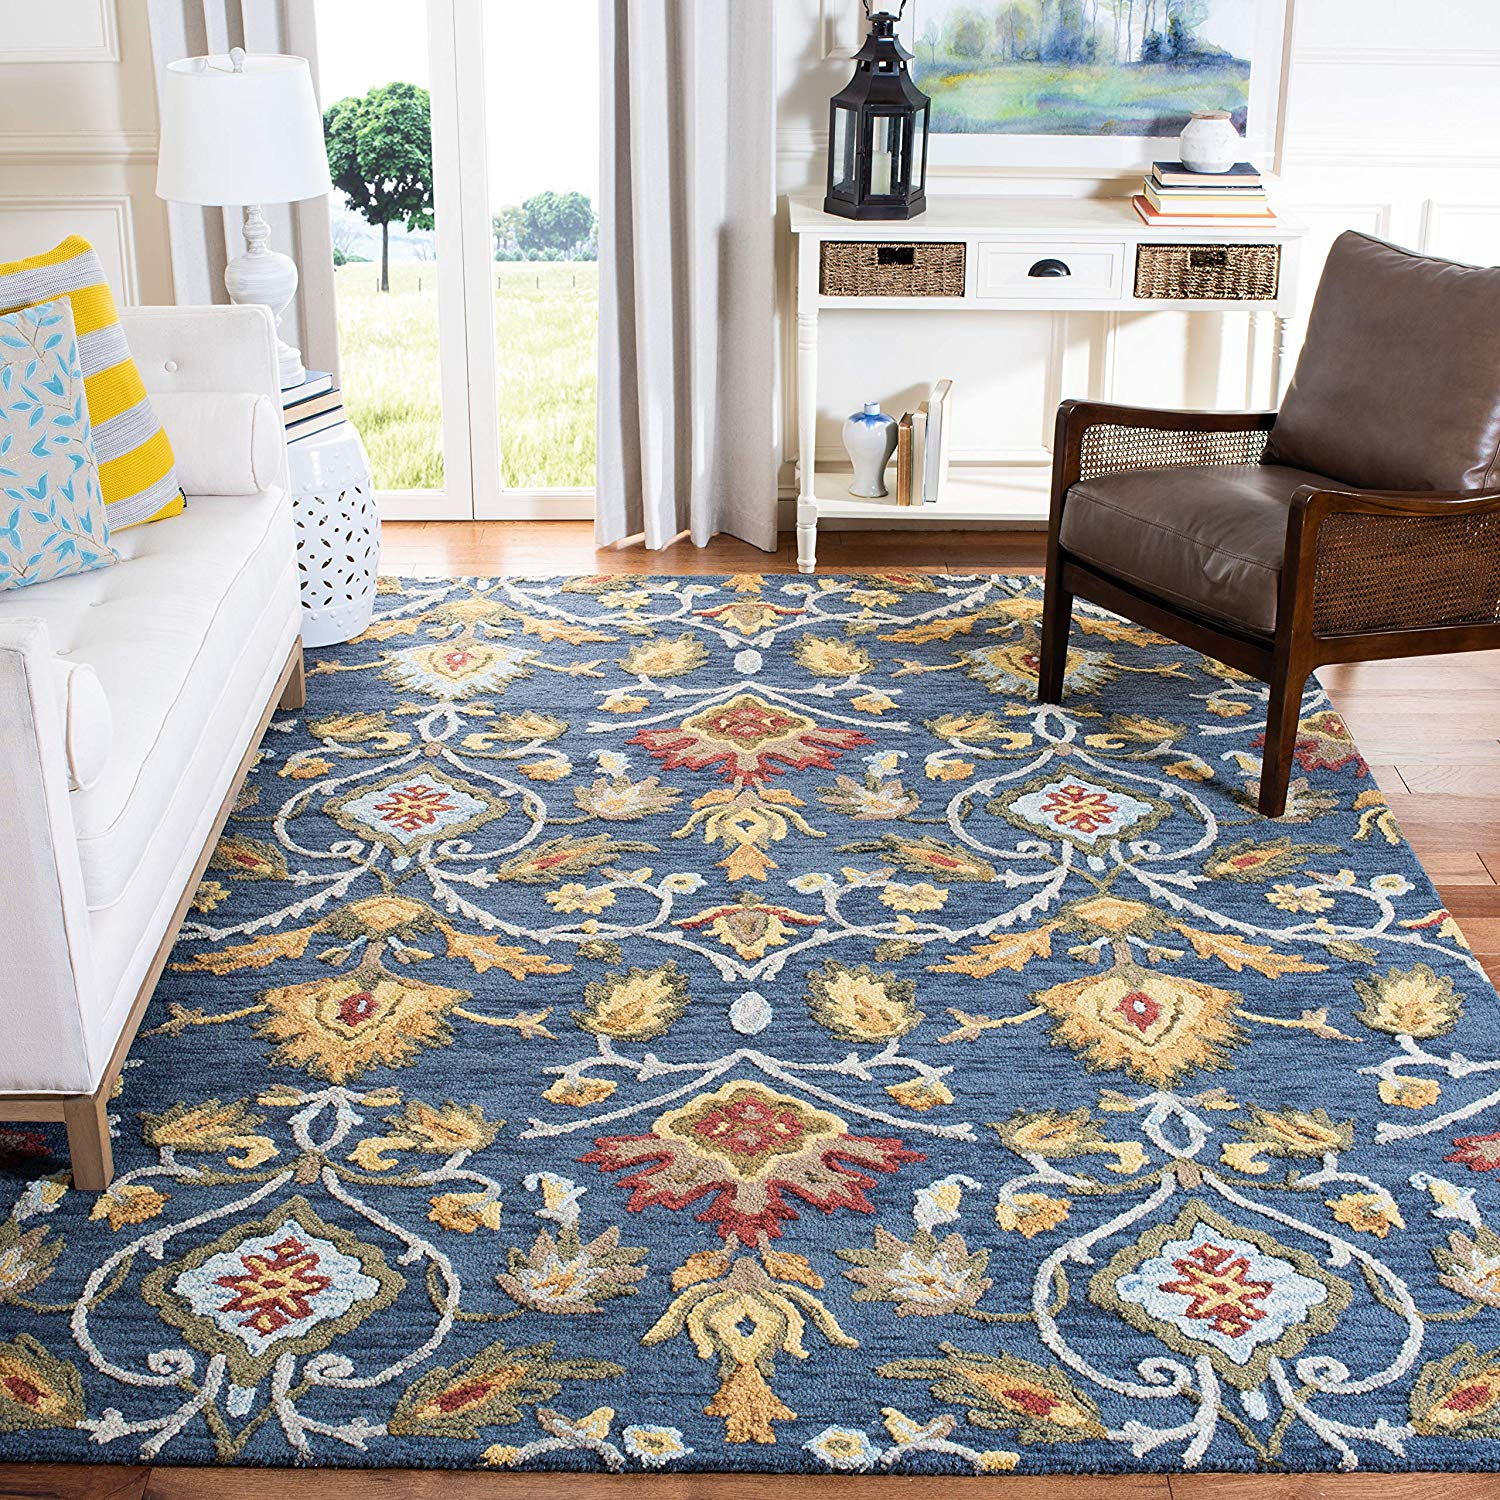 Safavieh Blossom Collection BLM402A Handmade Navy and Multi Premium Wool Area Rug (4in x 6in)